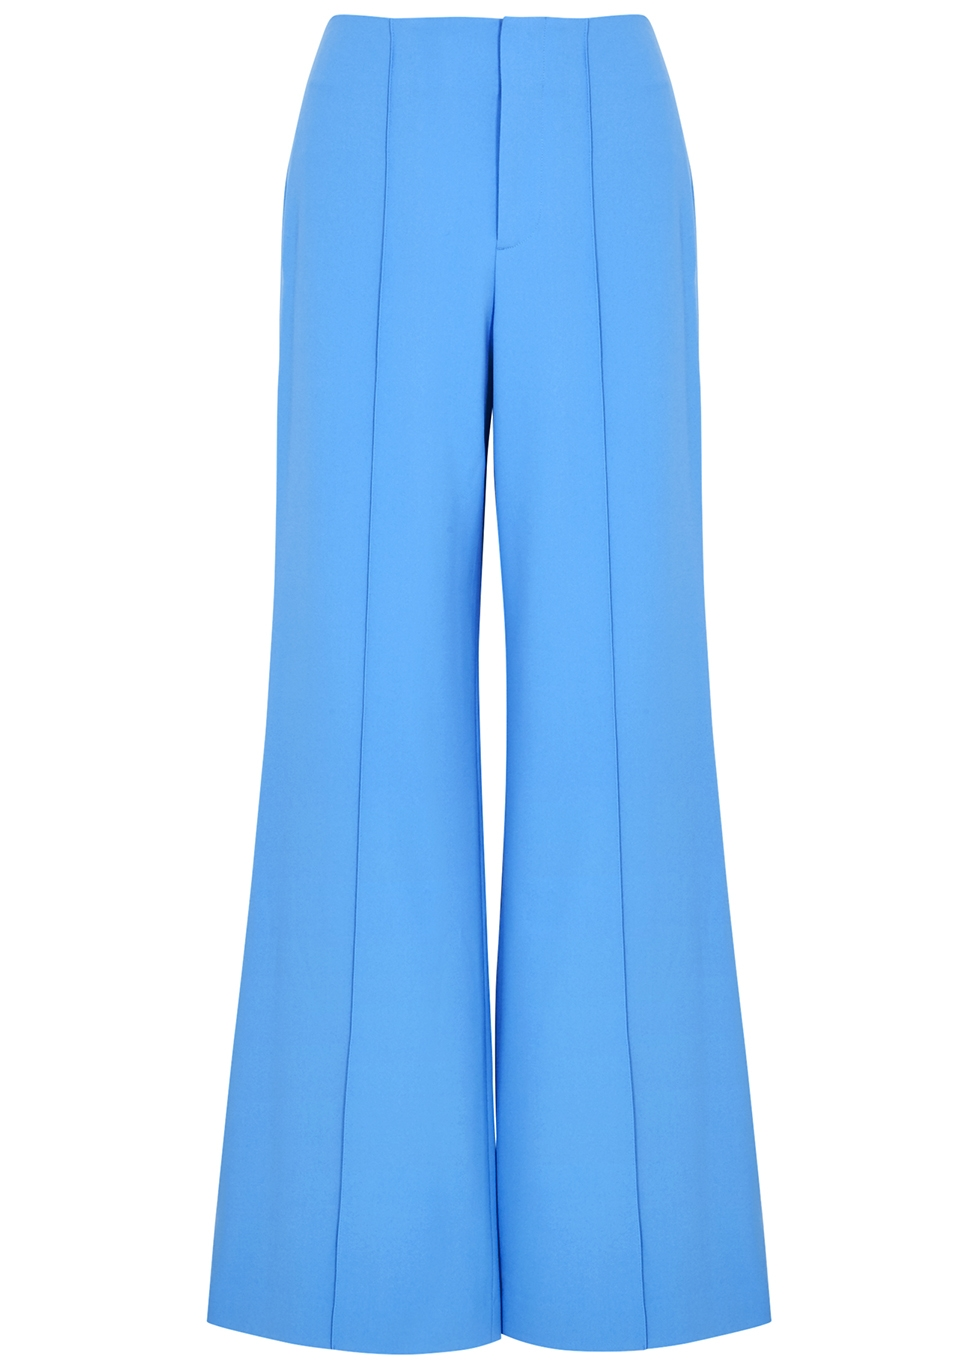 Dylan blue wide-leg trousers - Alice + Olivia